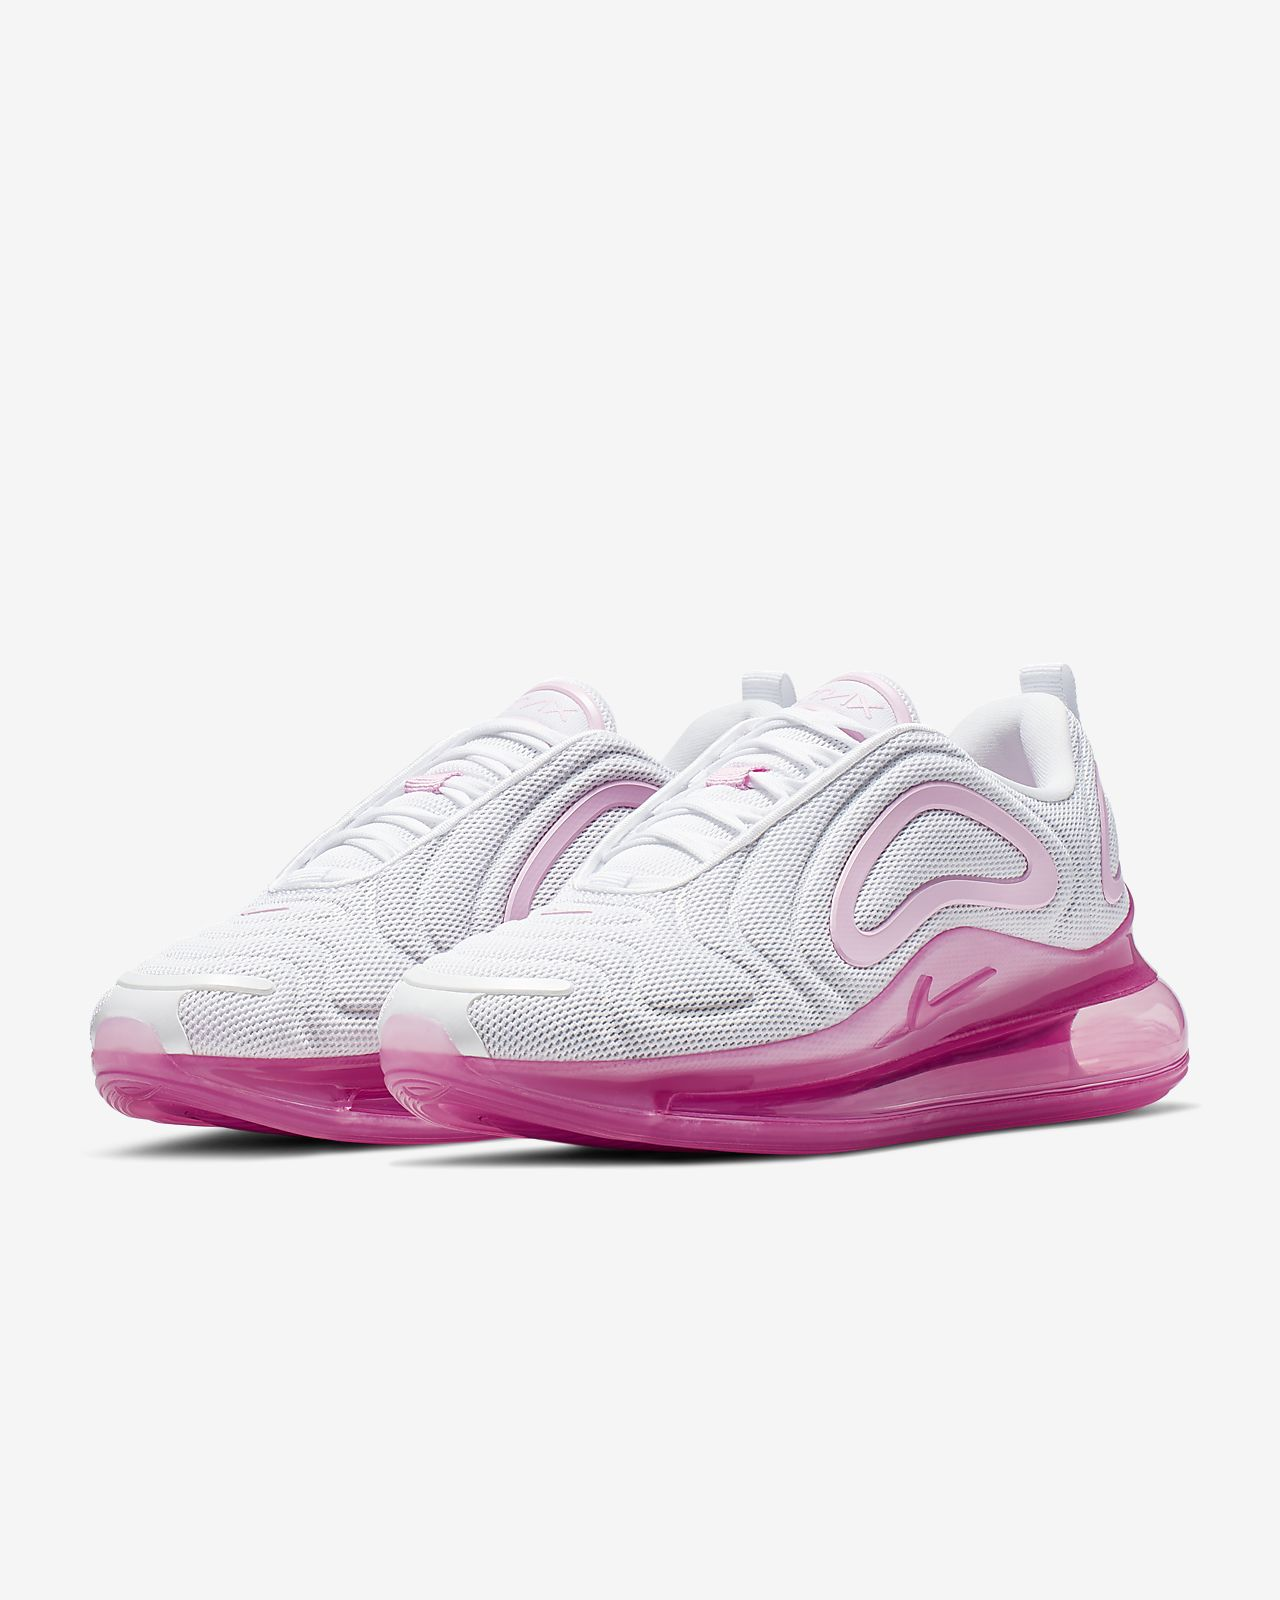 low priced 3efa2 f4175 ... Sko Nike Air Max 720 för kvinnor